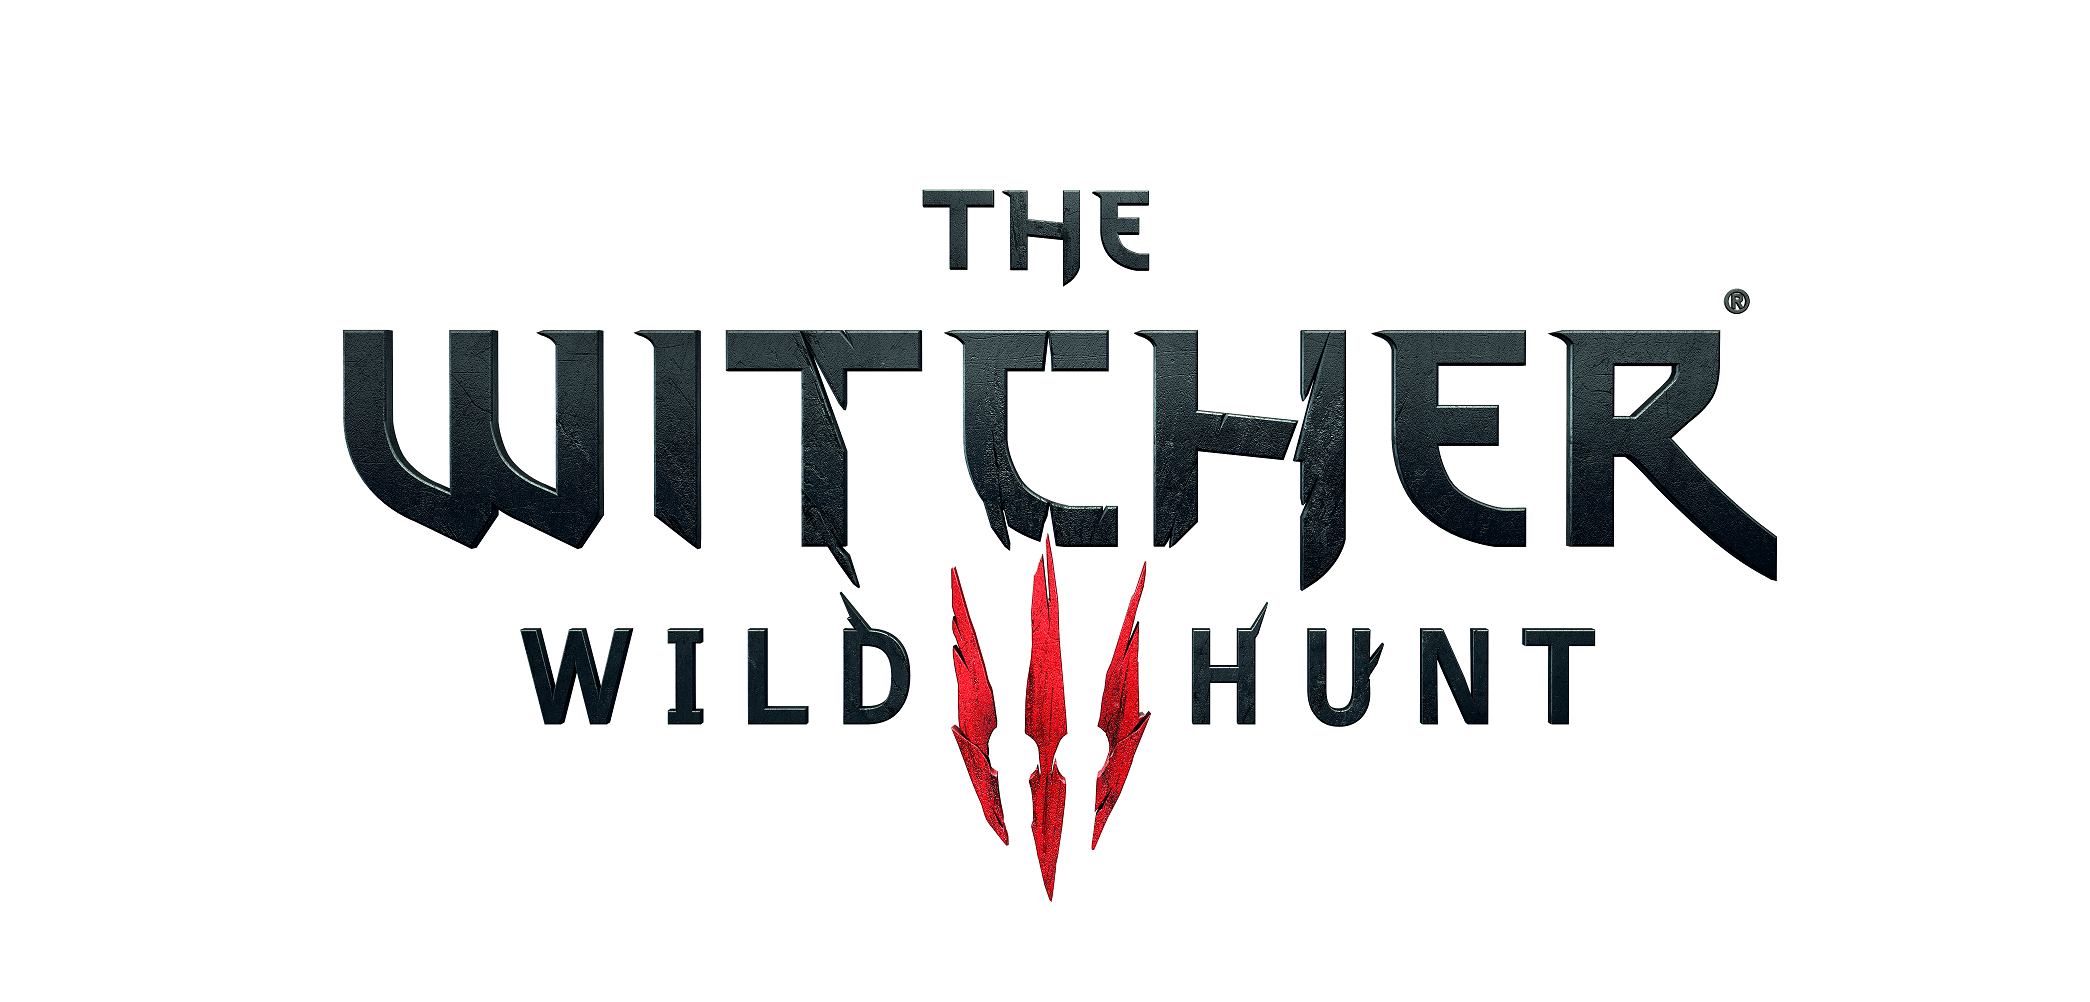 Witcher 3 wild hunt a review solutioingenieria Gallery